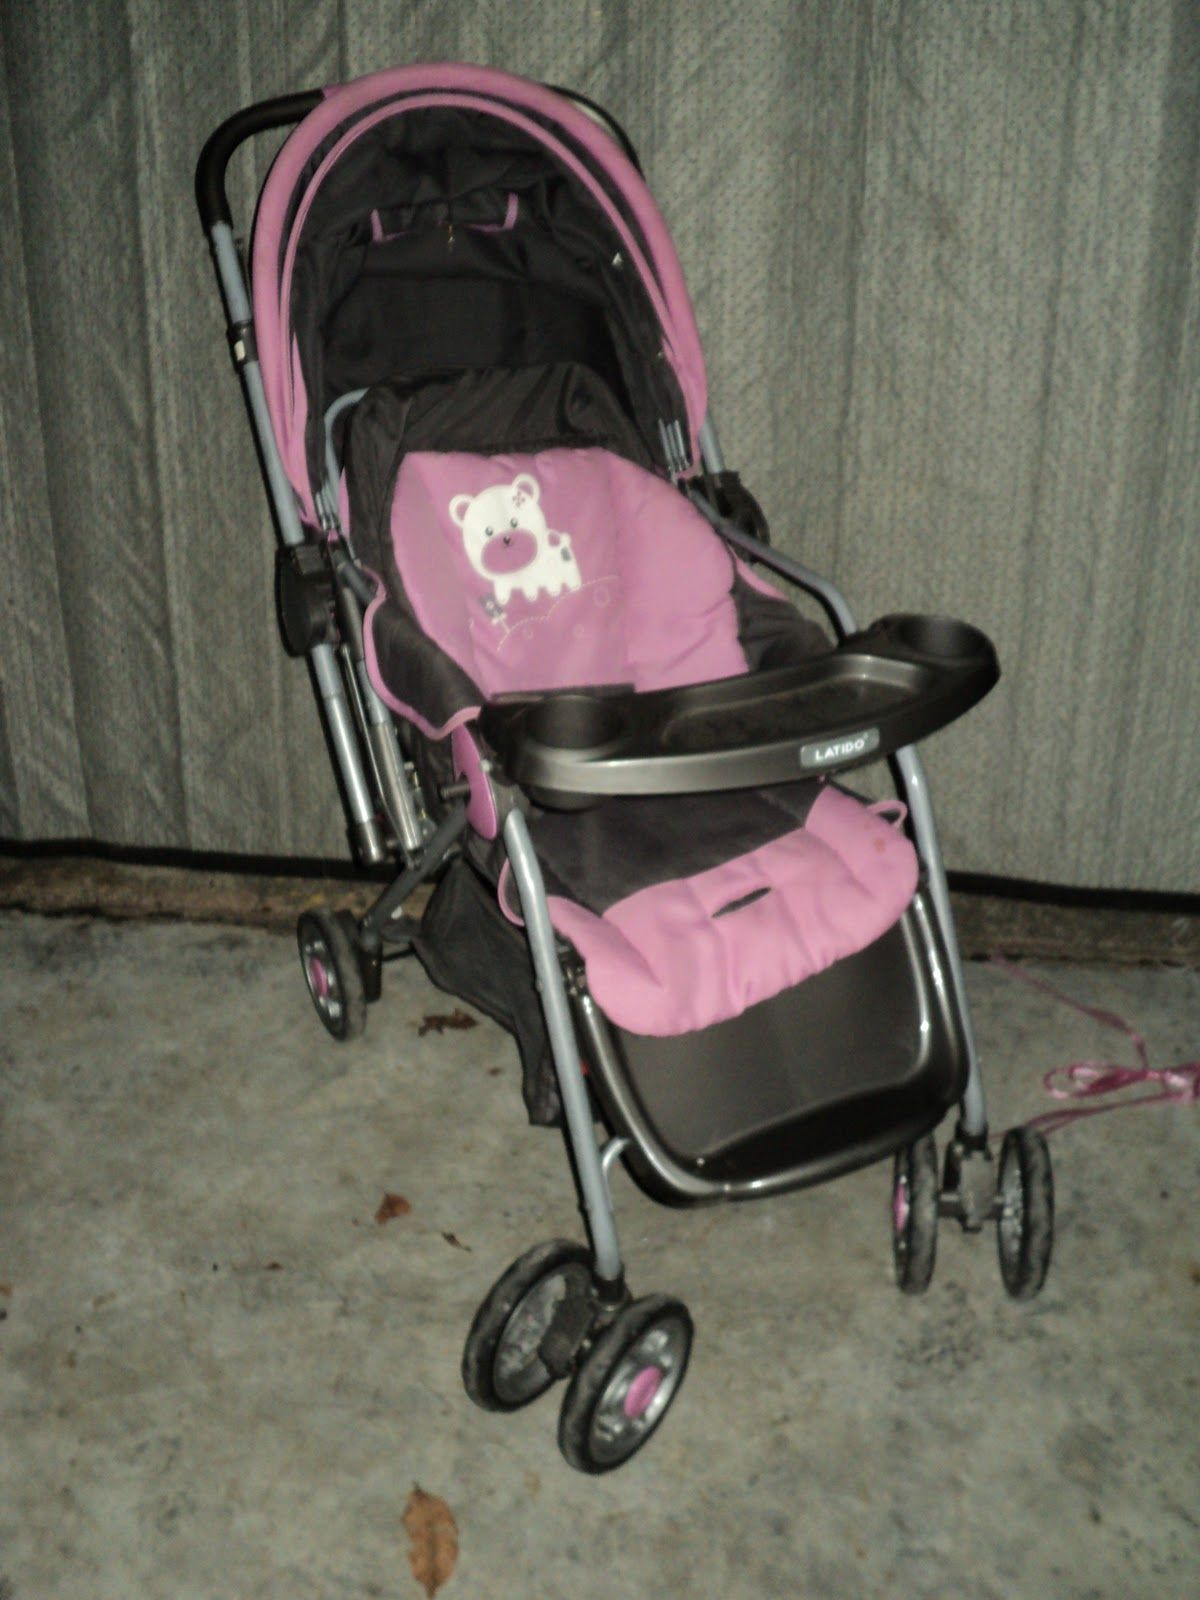 122 reference of baby stroller fan pink in 2020 Baby